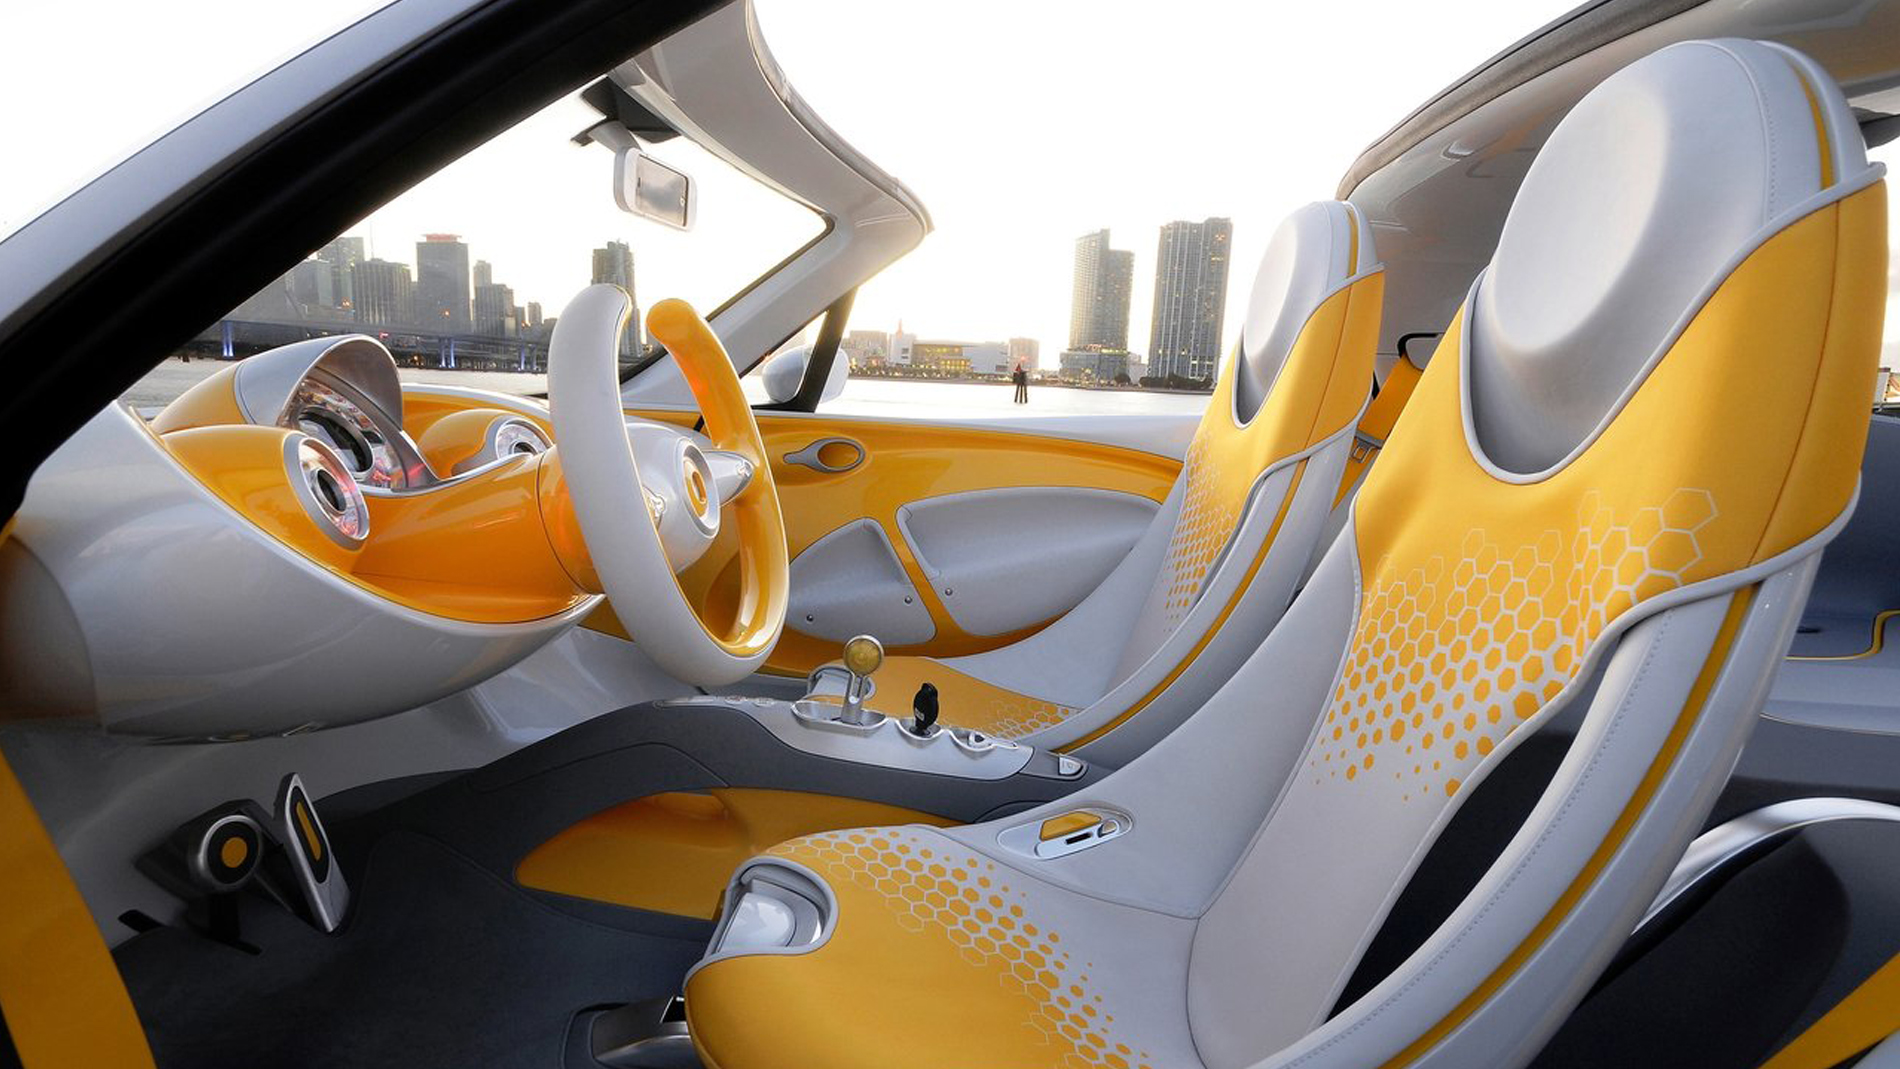 yellow white interieur car entrance perspective on city with river in background